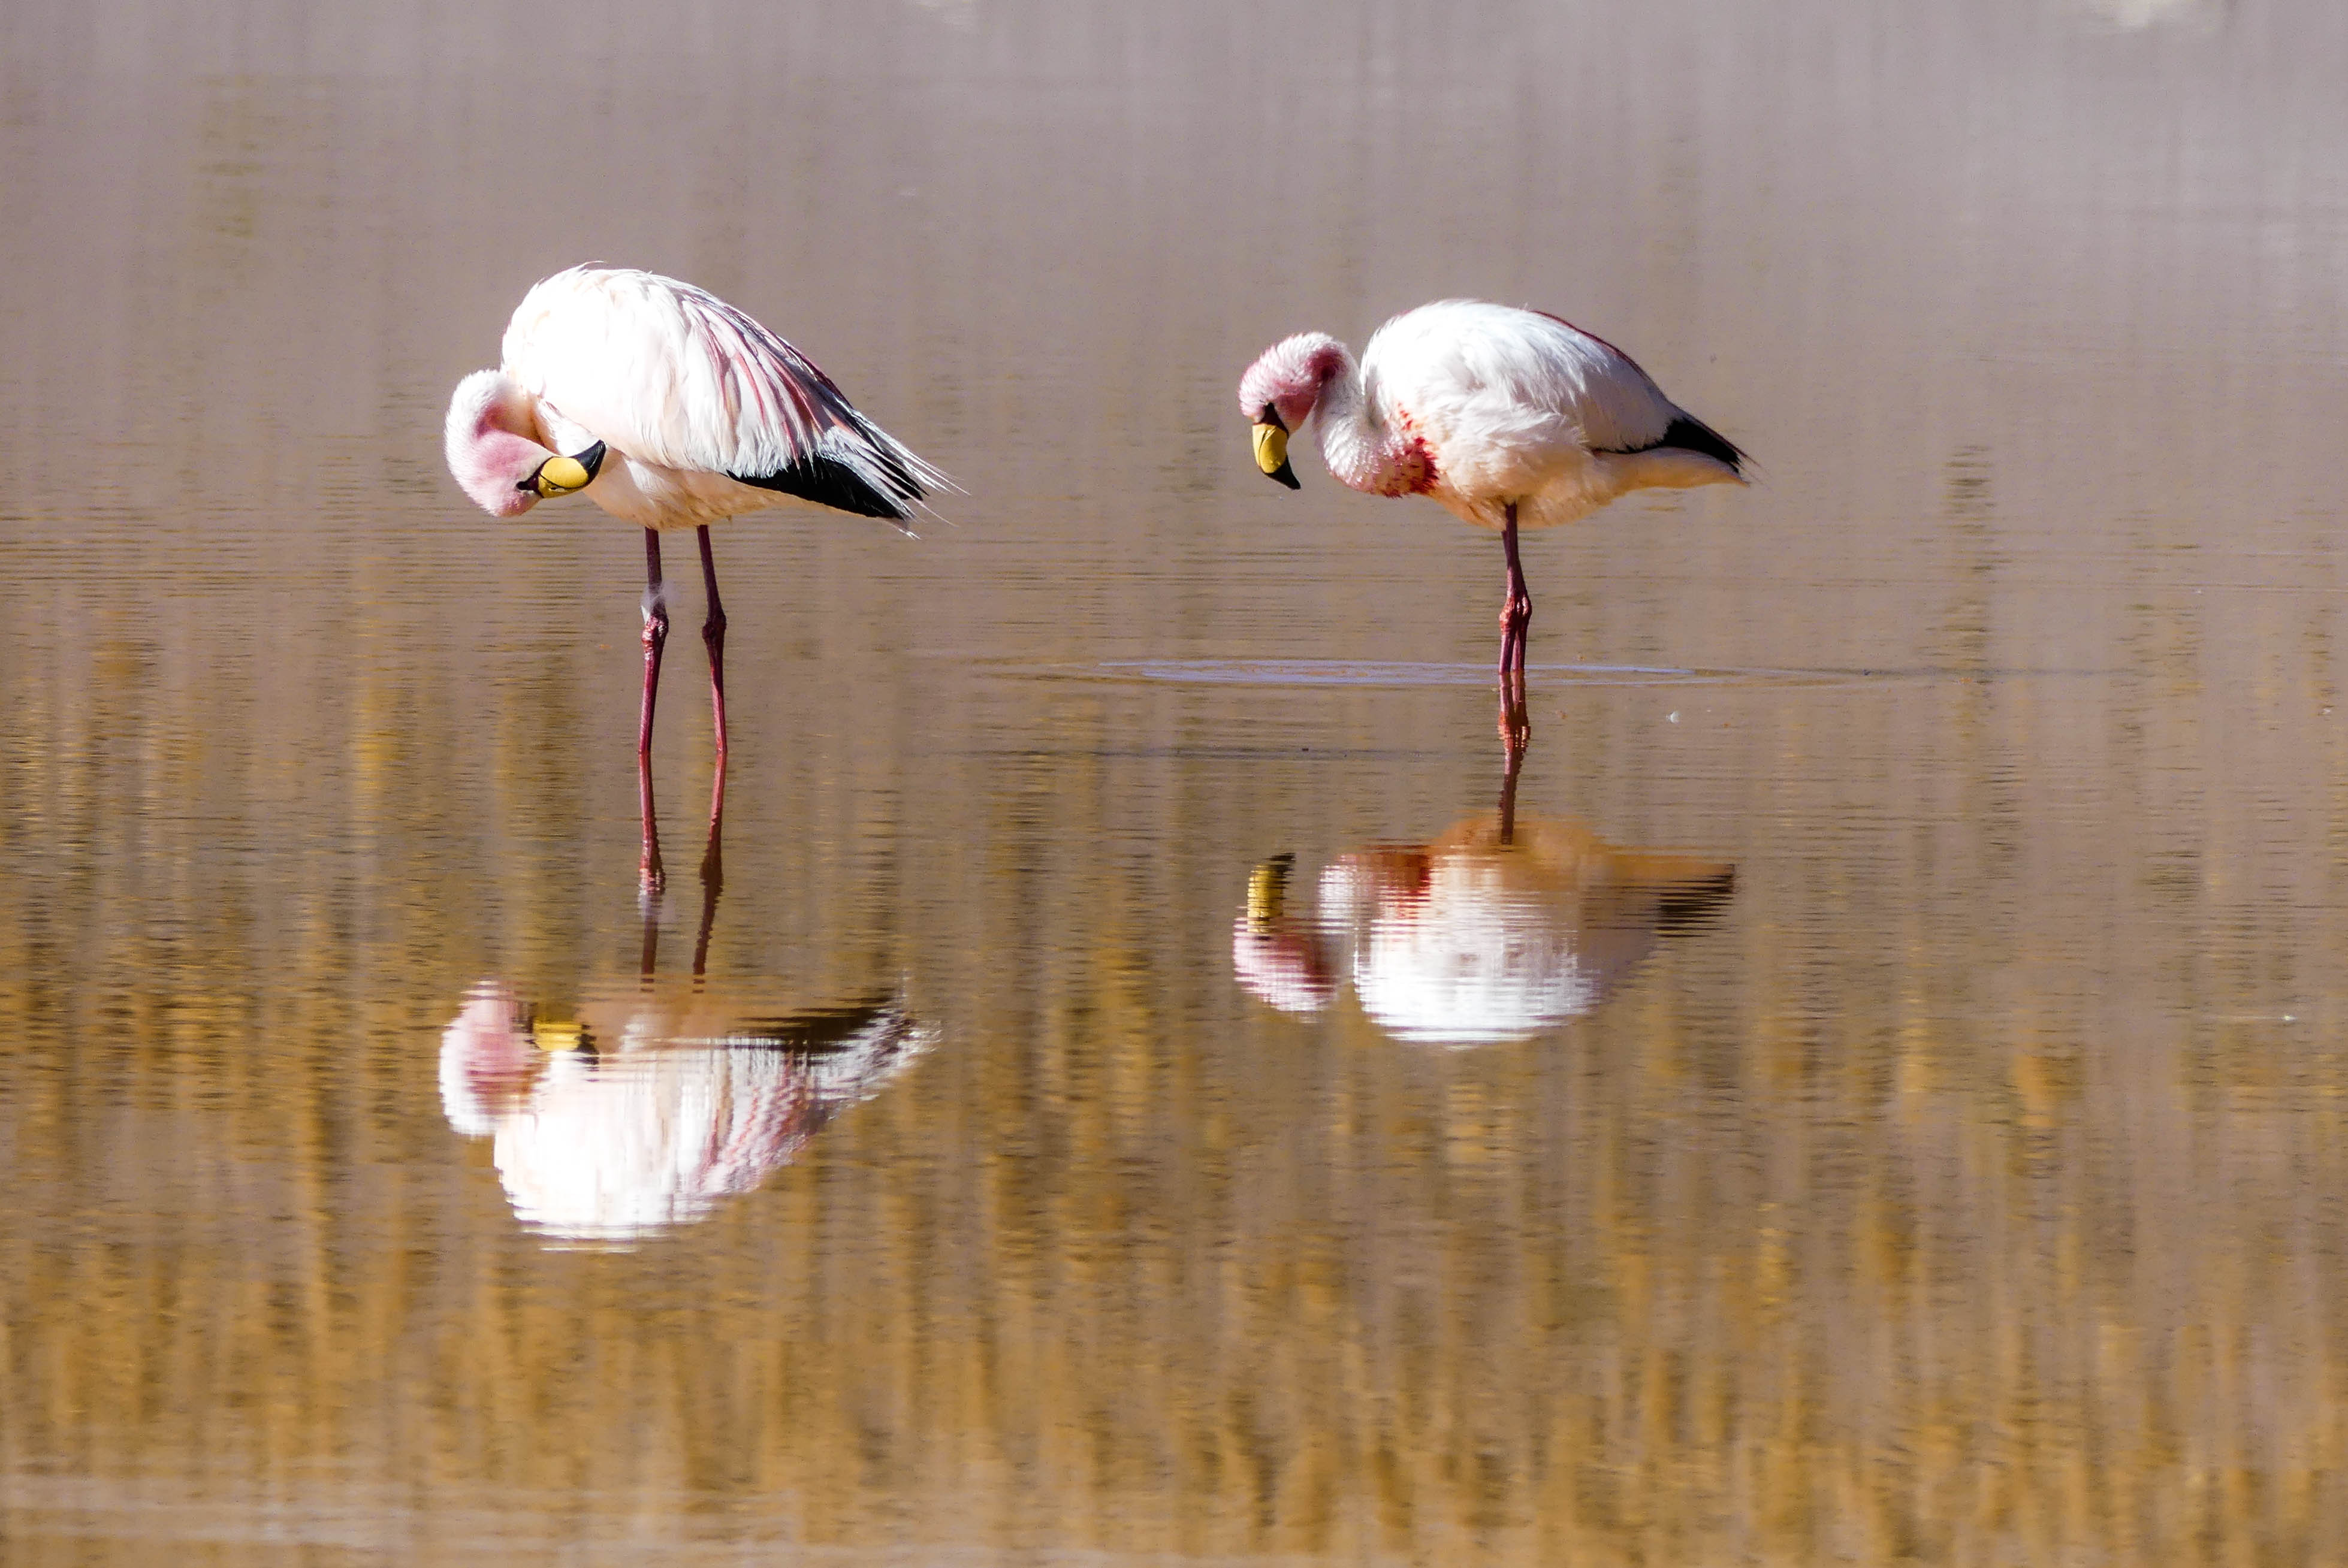 Flamingos in Bolivien